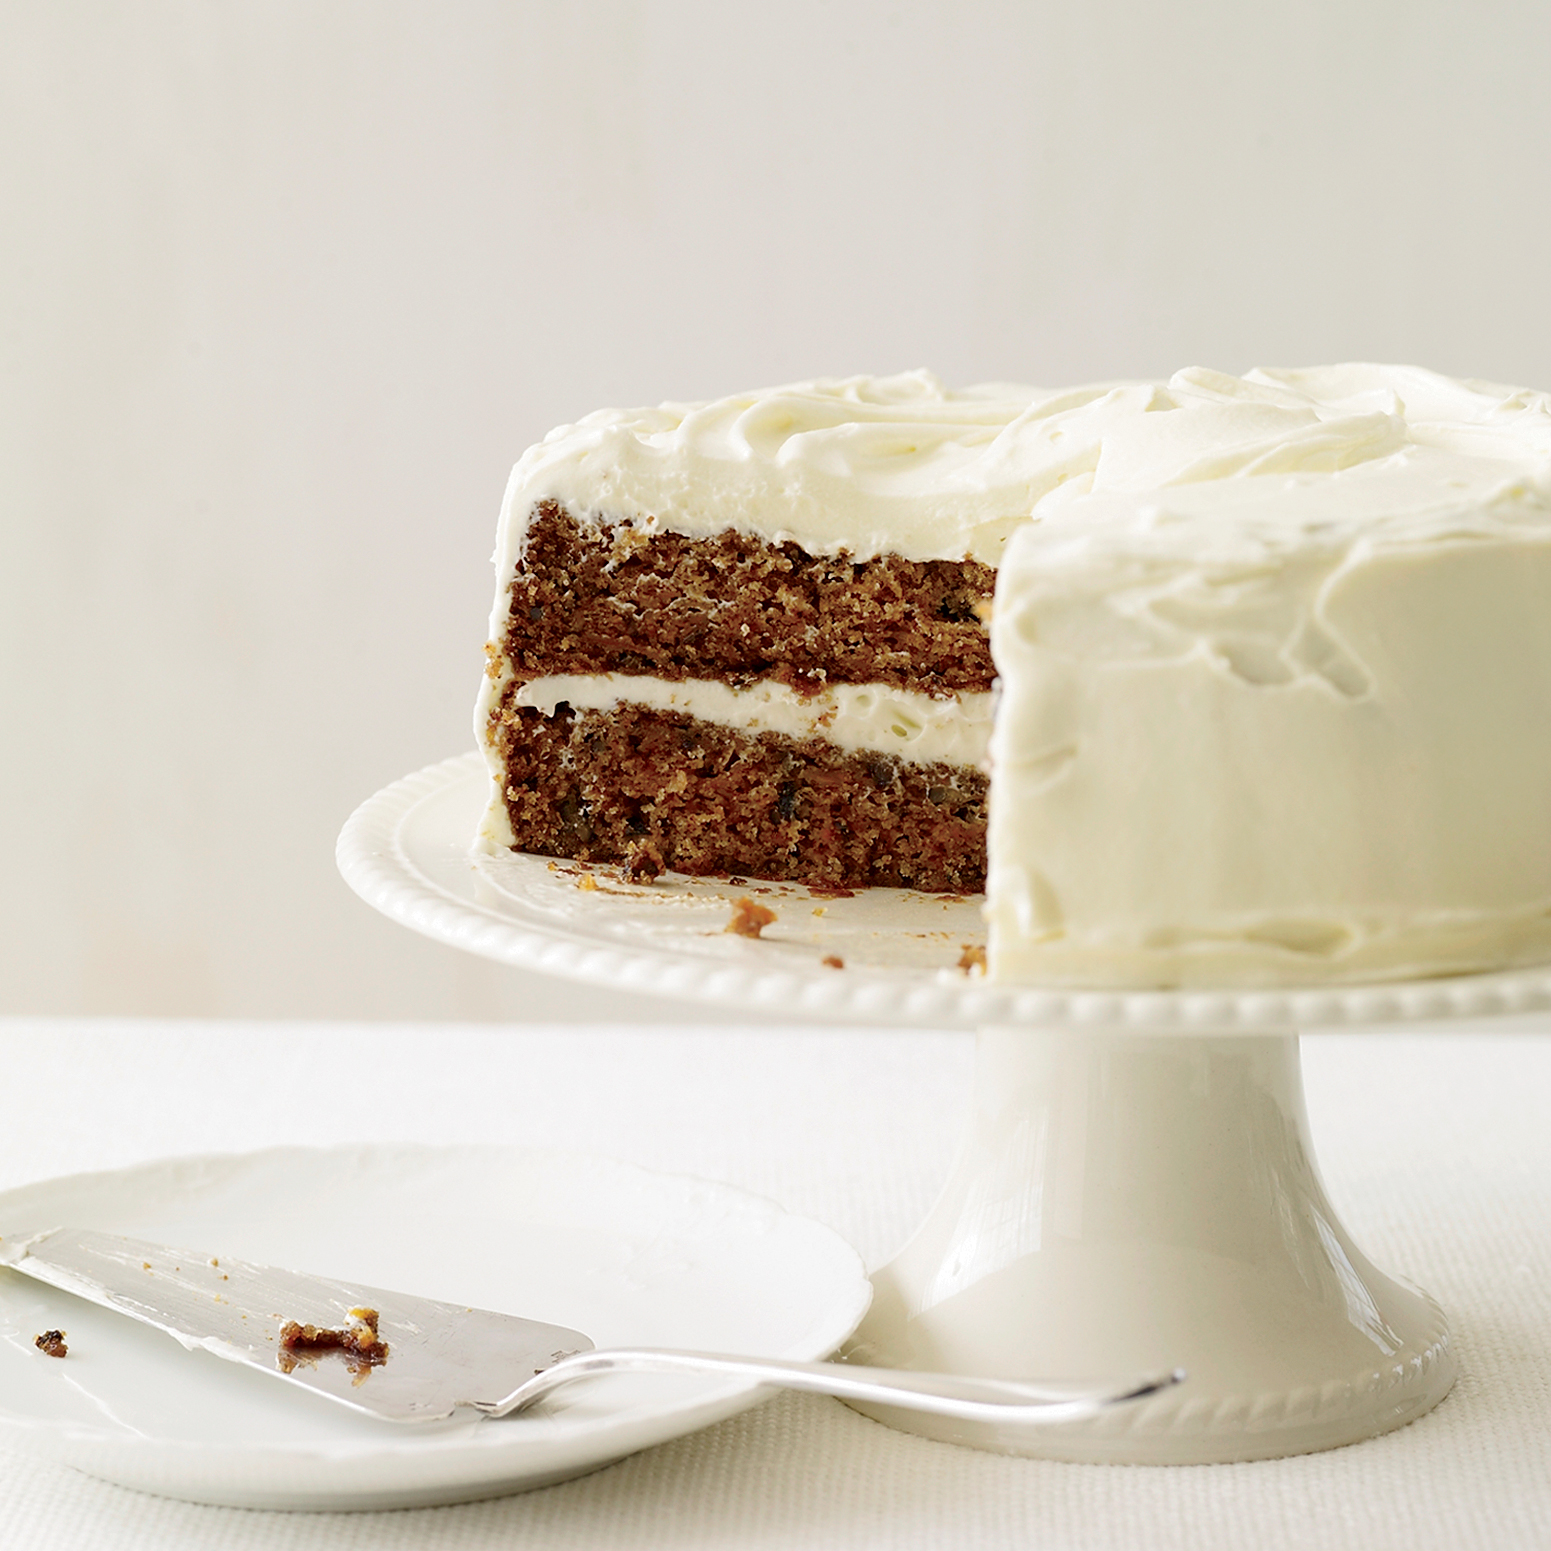 https://i1.wp.com/cdn-image.foodandwine.com/sites/default/files/200901-r-xl-classic-carrot-cake-with-fluffy-cream-cheese-frosting.jpg